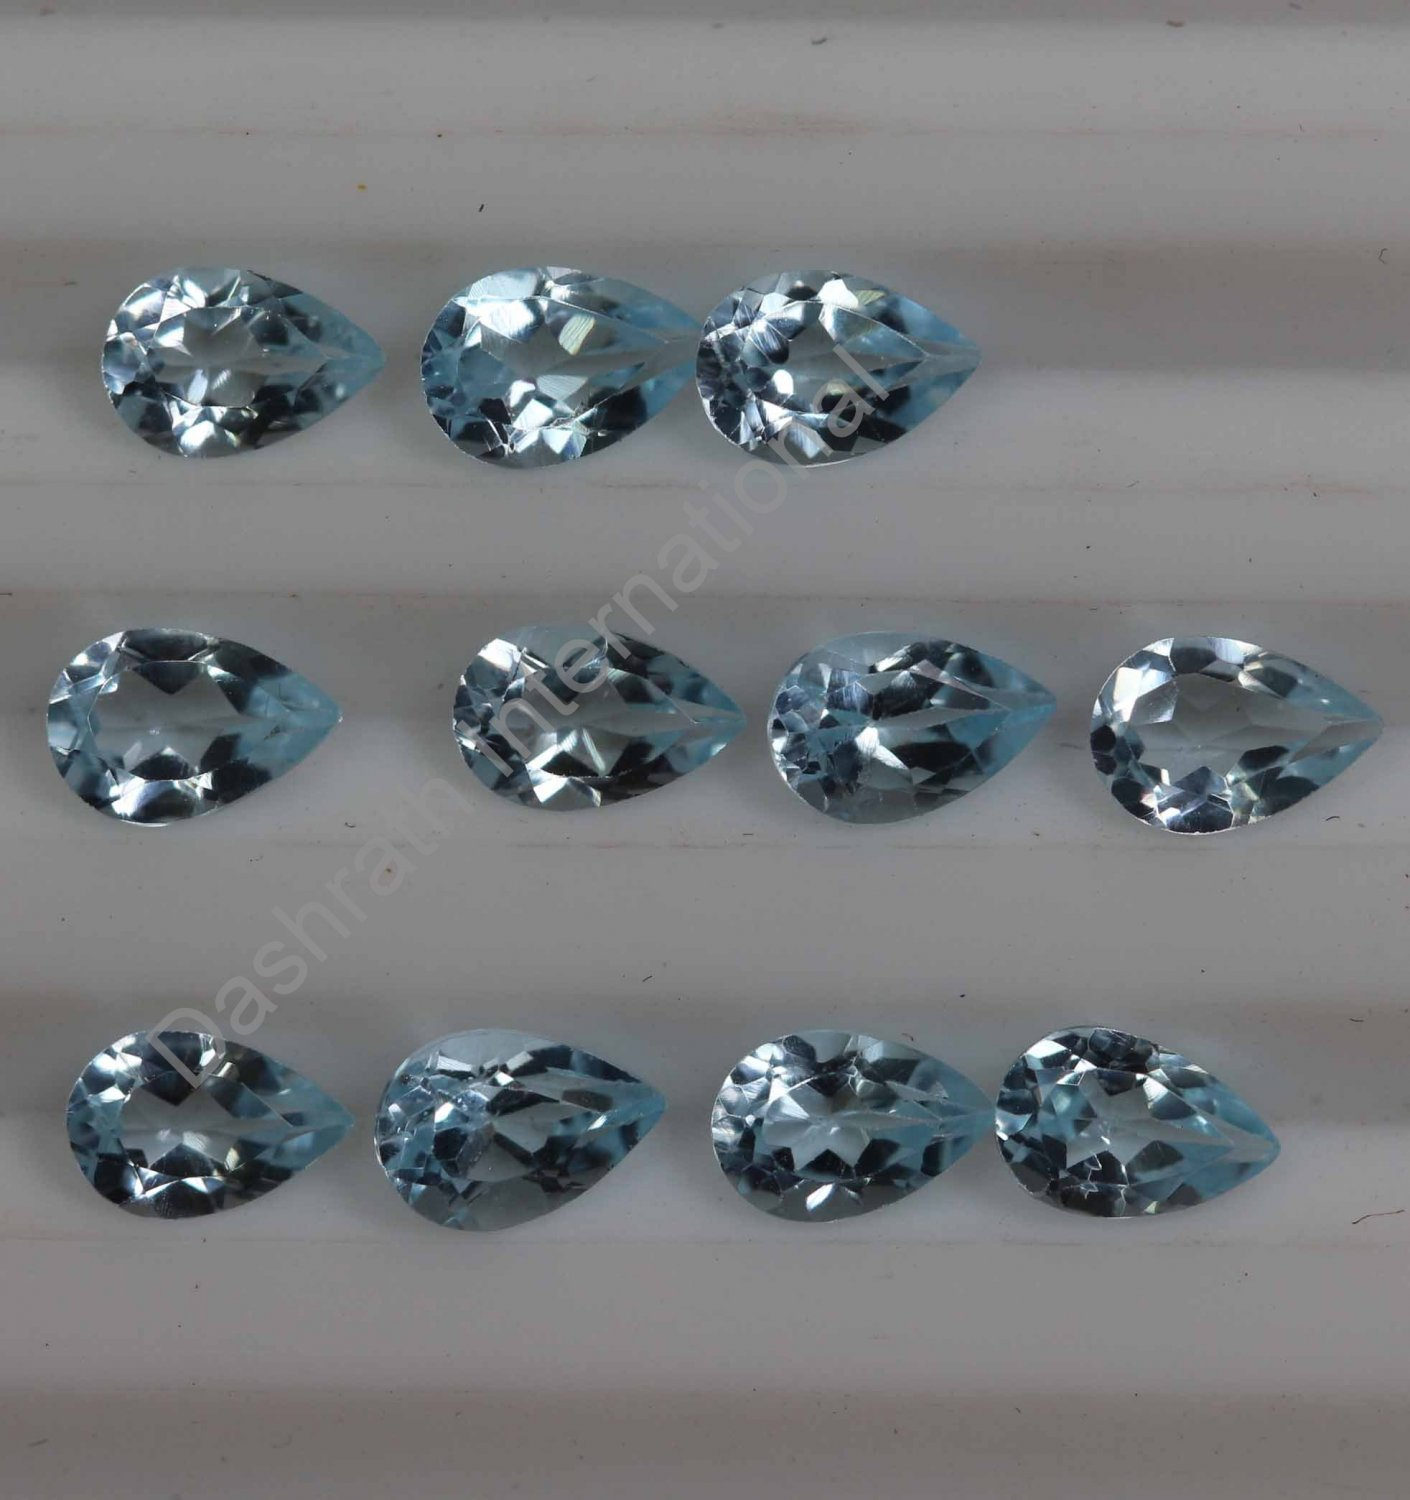 7x5mm  Natural Sky Blue Topaz Faceted Cut Pear 25 Pieces Lot  Top Quality Loose Gemstone